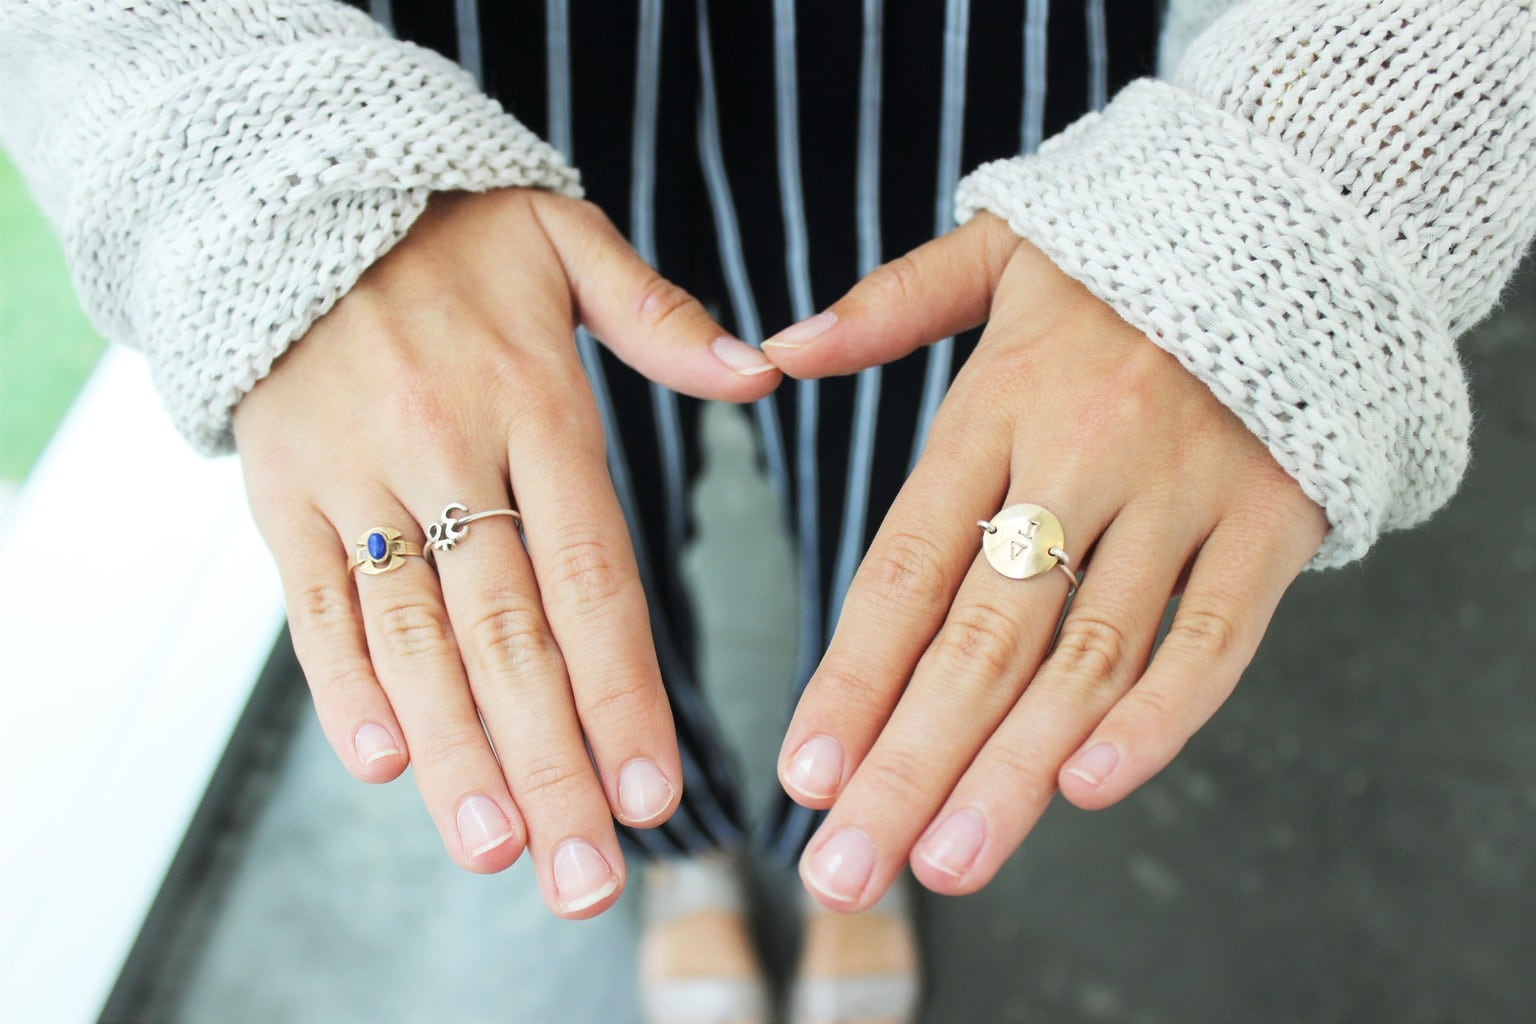 Barnard College student shows off her delicate gold rings and loose-knit white sweater.